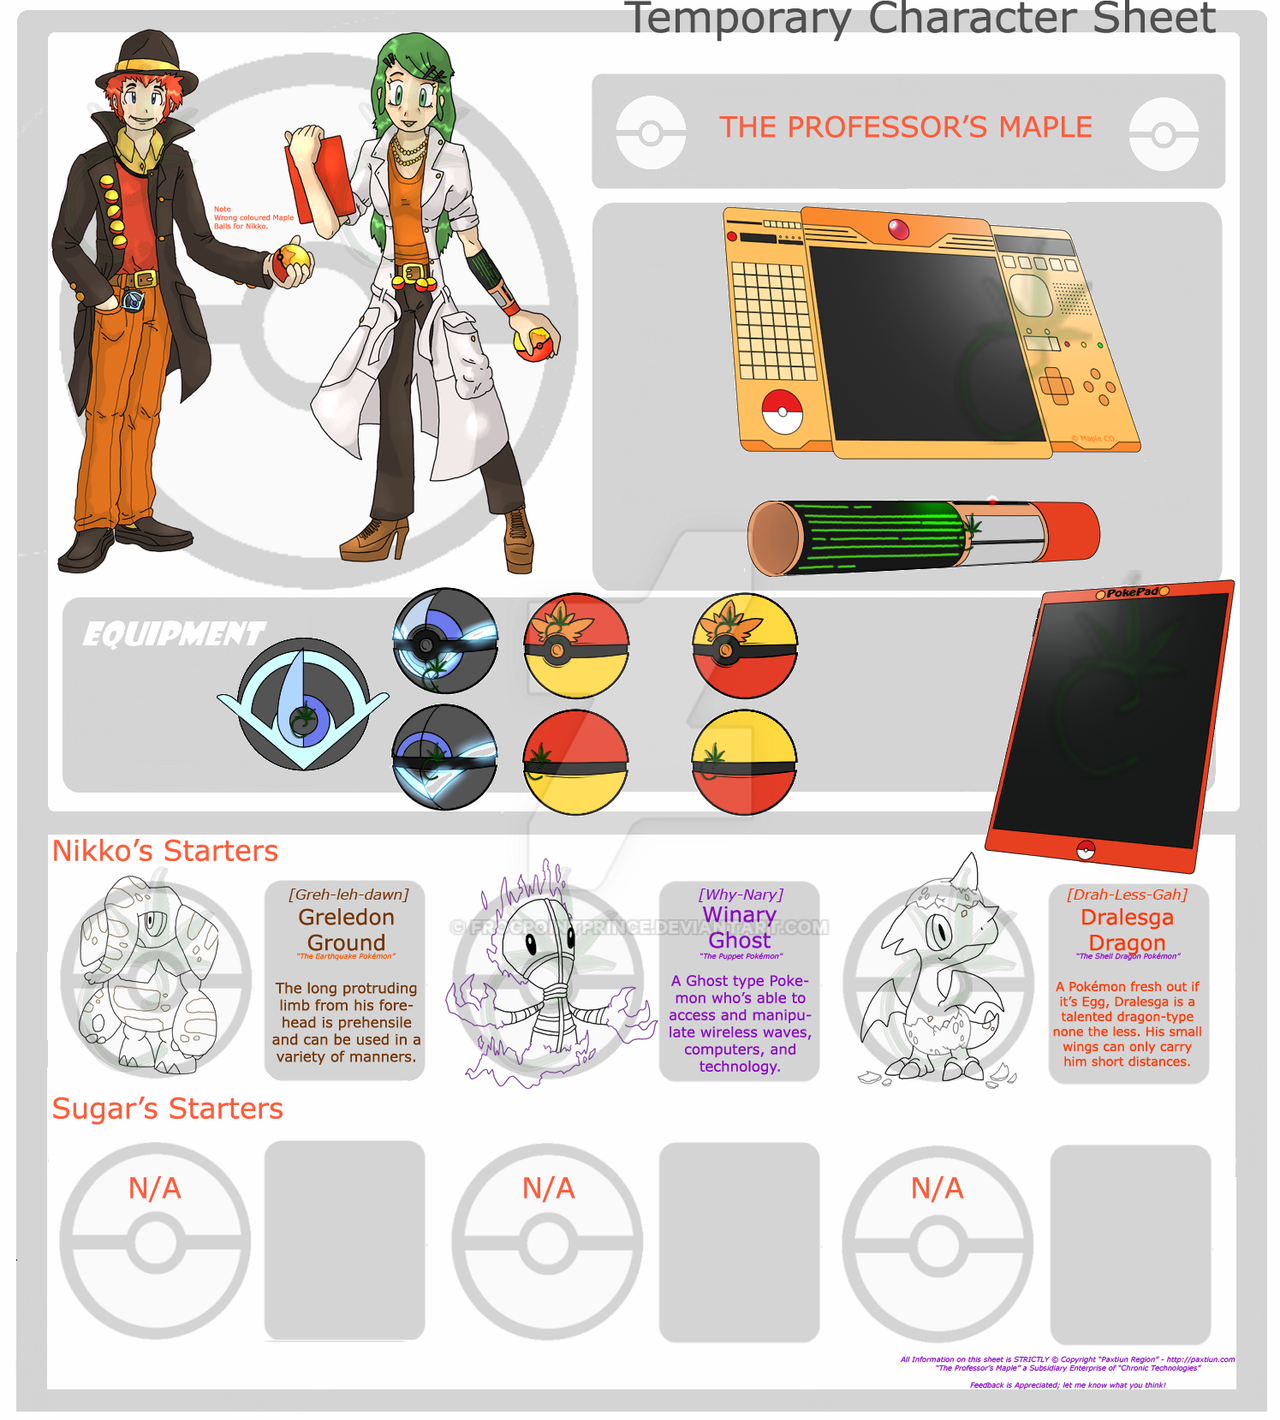 Professor's Maple Temporary Character Sheet by FrogPointPrince